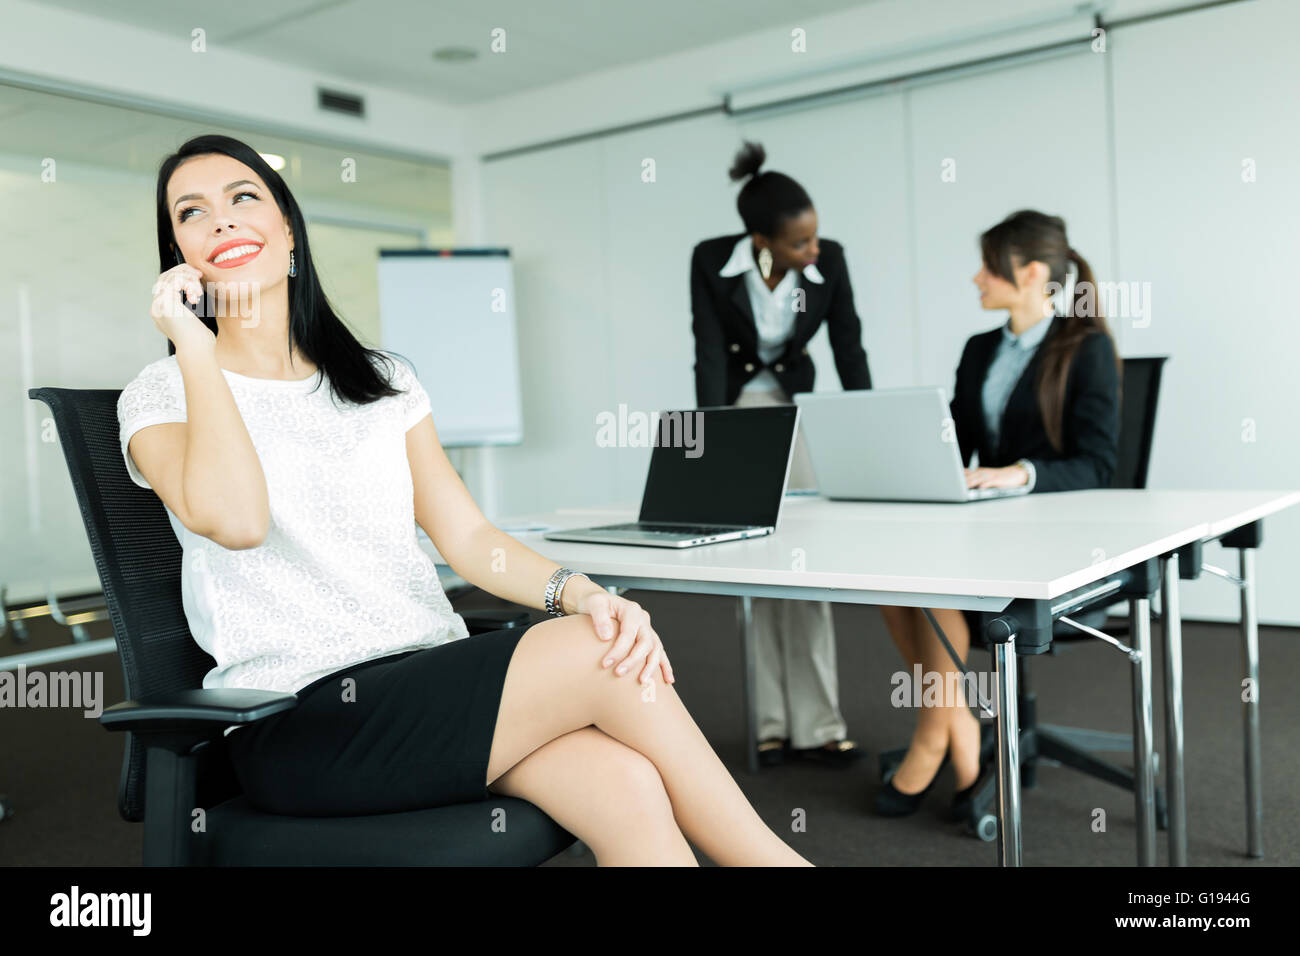 Beautiful businesswomen in an office working on a laptop and calling potential partners - Stock Image